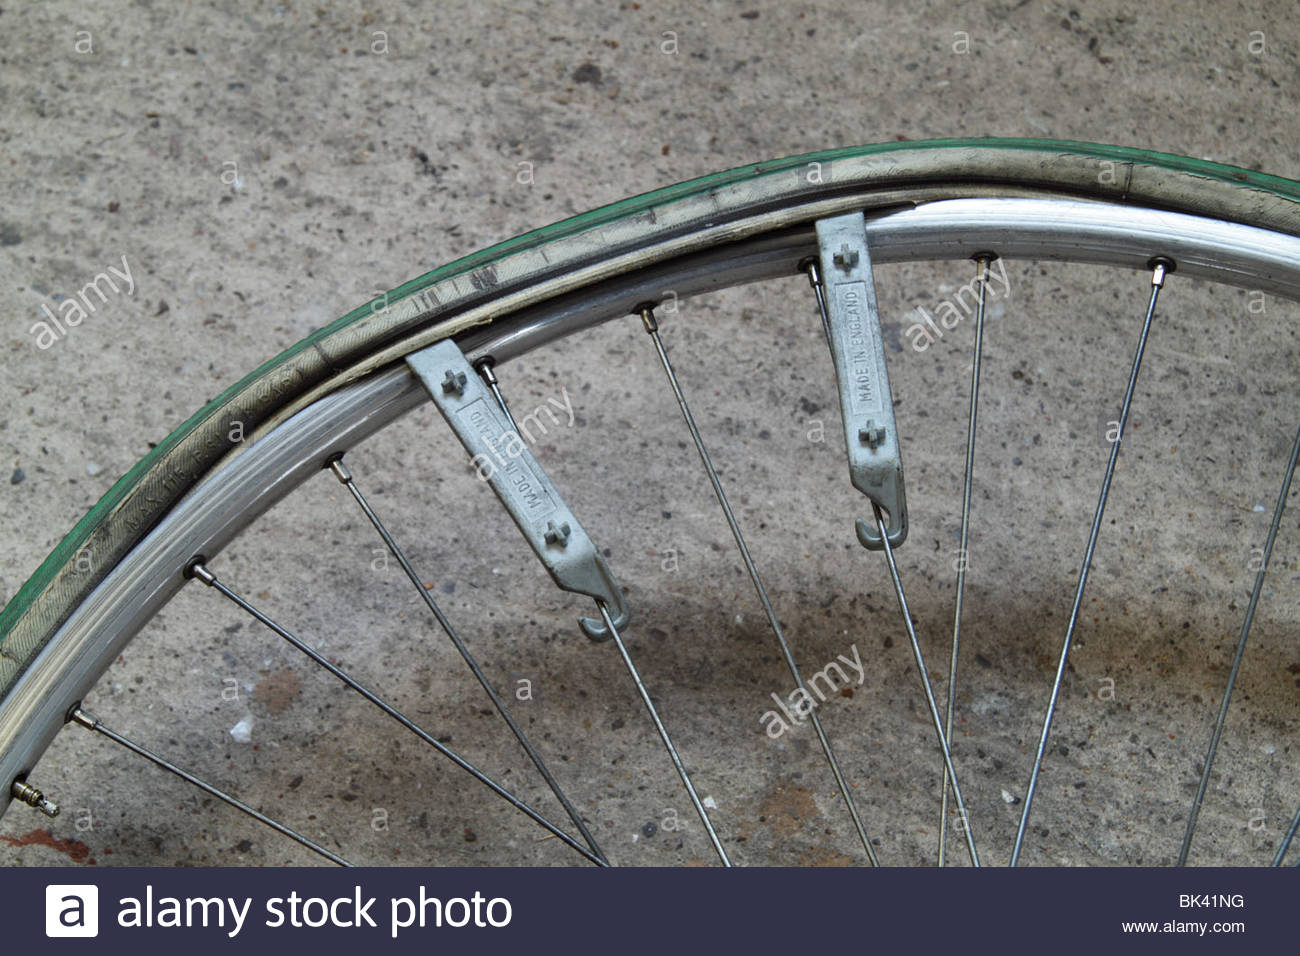 Tyre Levers in Place for the Removal of a Bicycle Tyre - Stock Image